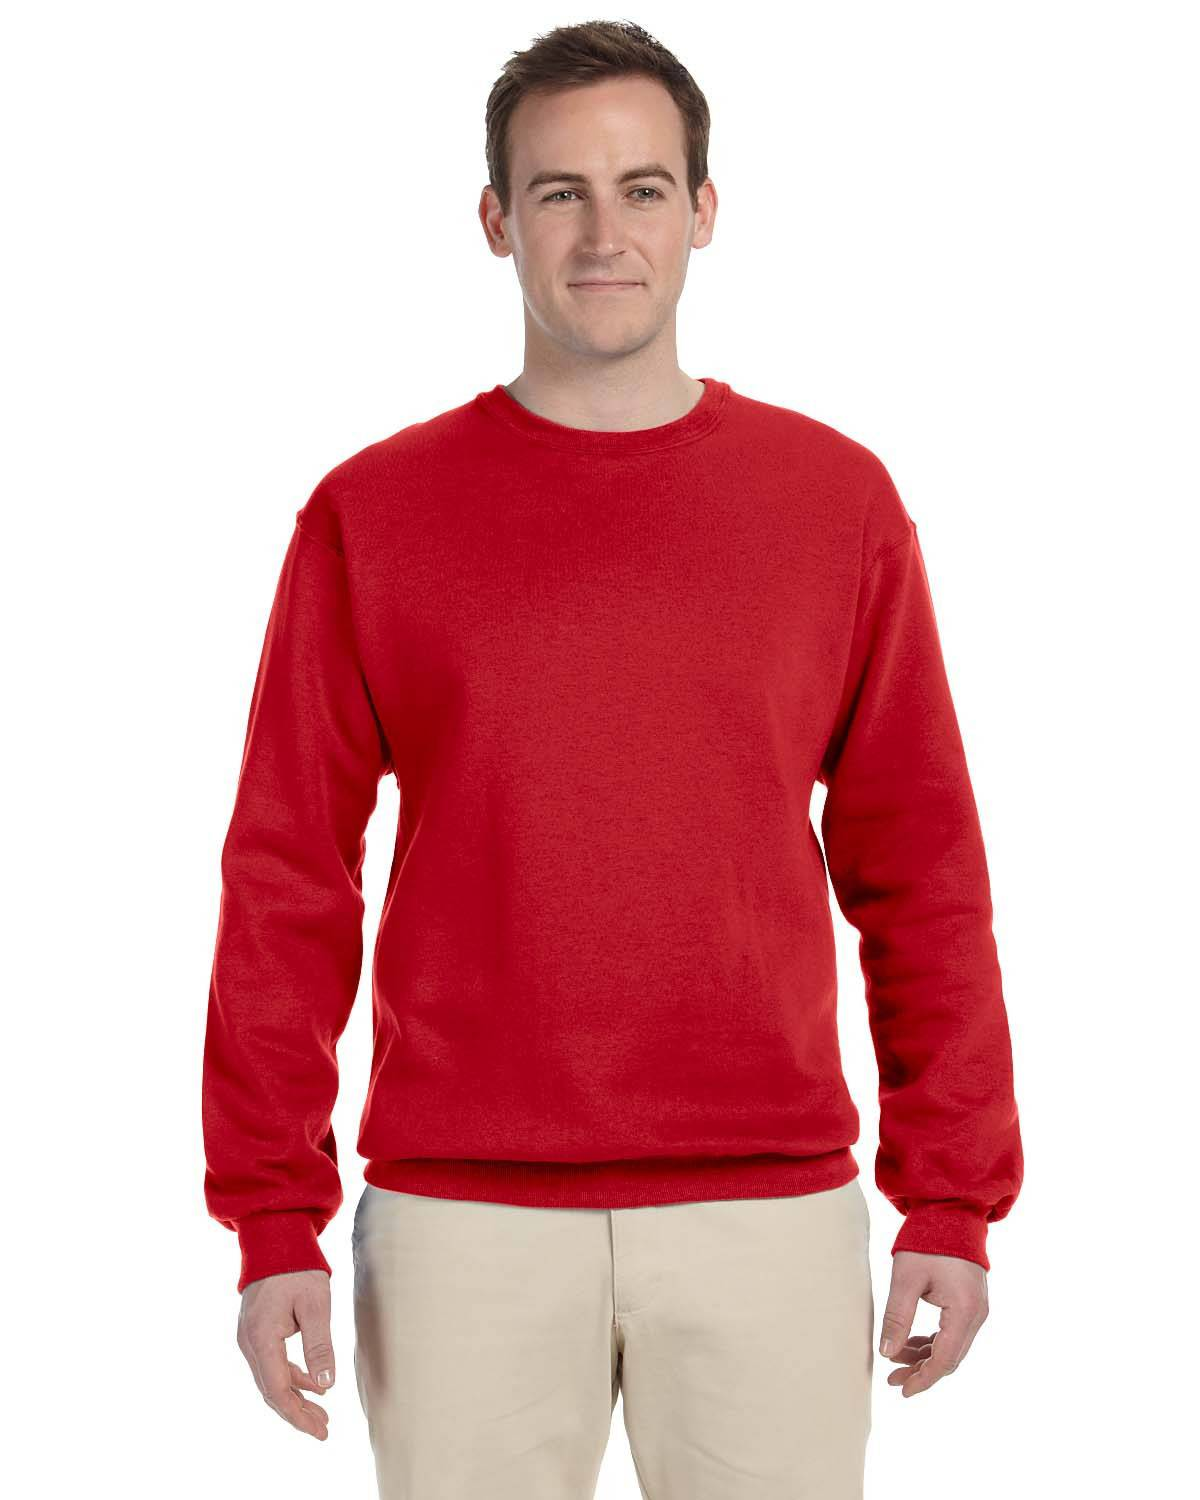 Fruit of the Loom 82300 70/30 Super Heavyweight Crew - True Red - M 82300